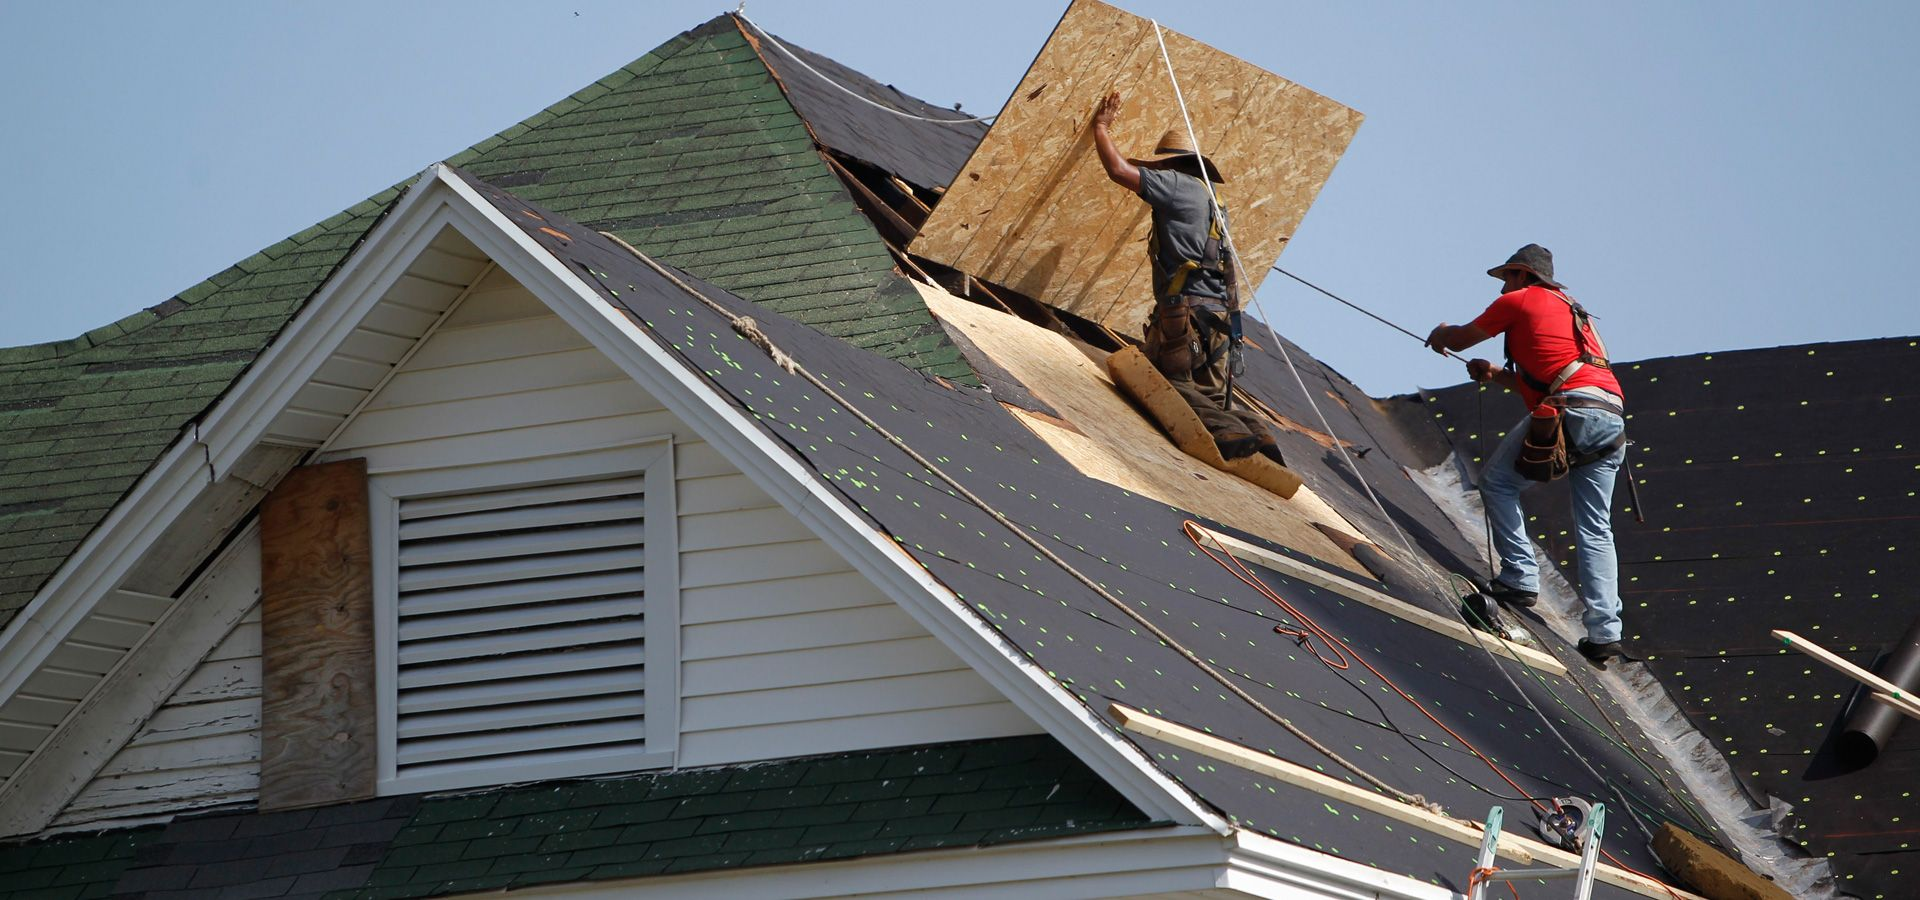 How To Get The Perfect Commercial Roof Roof Restoration Roof Repair Roofing Services